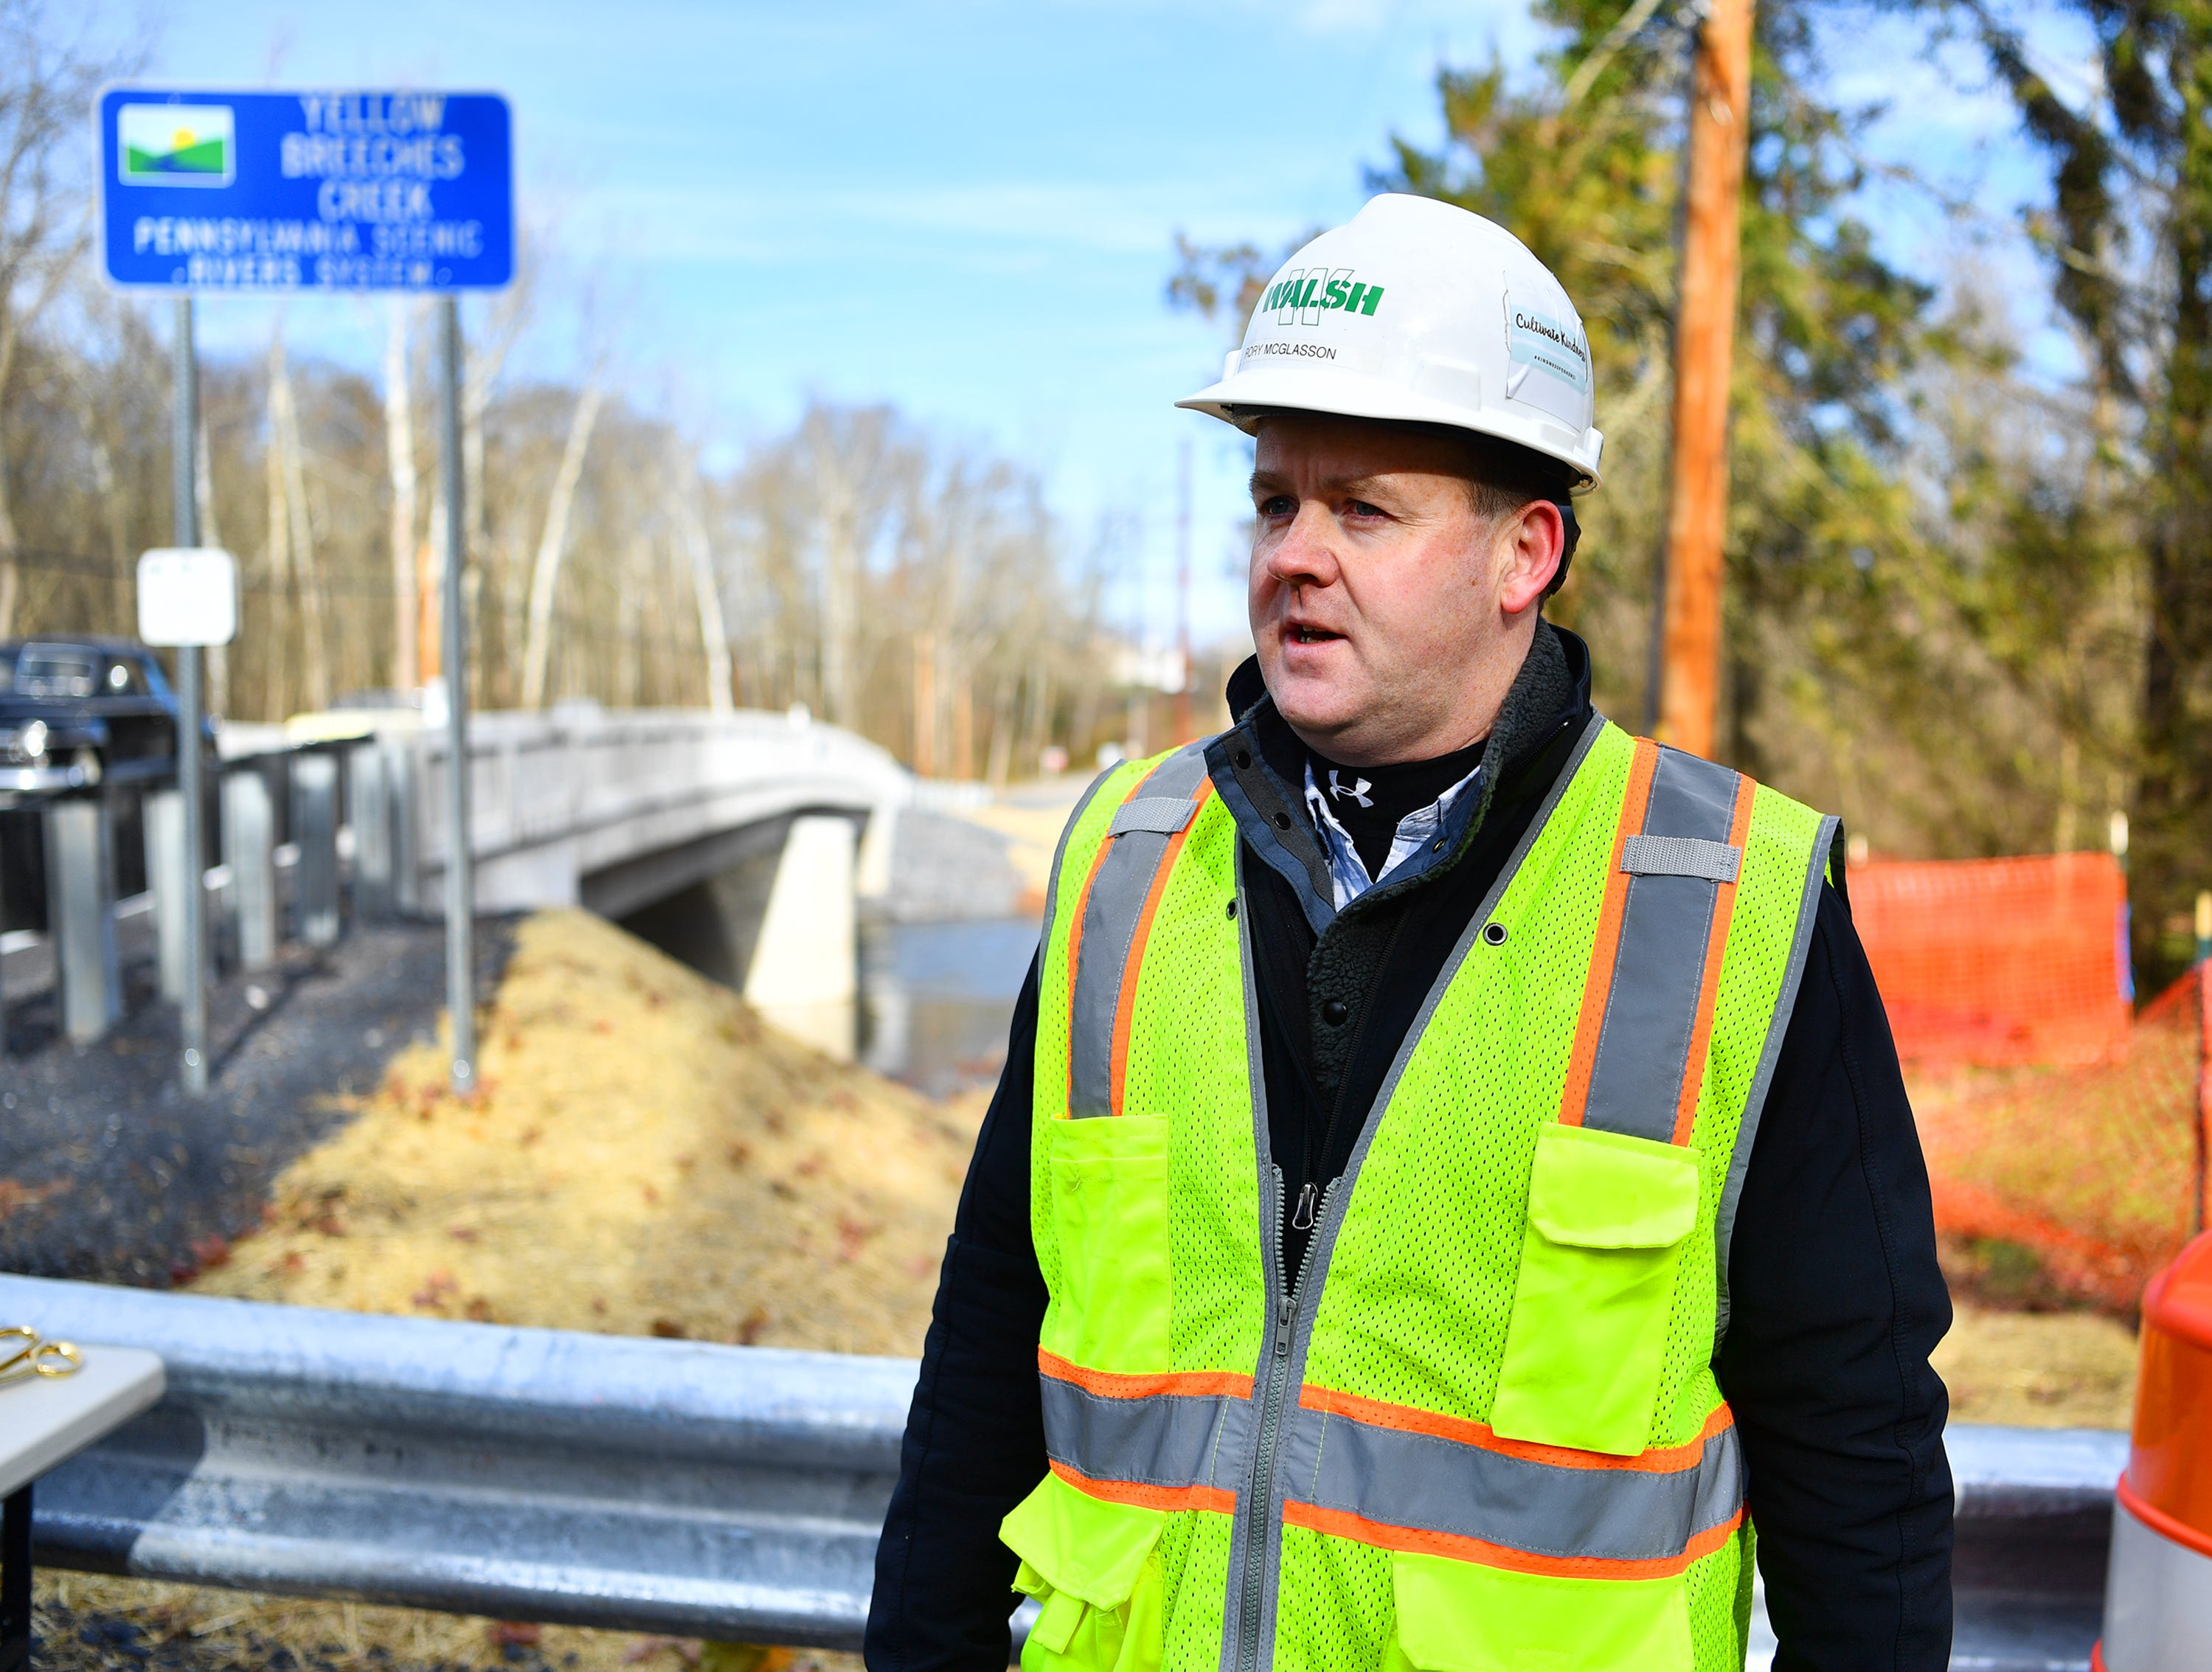 Public Information Coordinator Rory McGlasson, of Walsh Construction, speaks following ribbon-cutting ceremony commemorating the opening of the PA Rapid Bridge Replacement project's 500th bridge, located on Andersontown Road, spanning Yellow Breeches Creek into both Fairview and Lower Allen Townships, Thursday, Nov. 29, 2018. Dawn J. Sagert photo